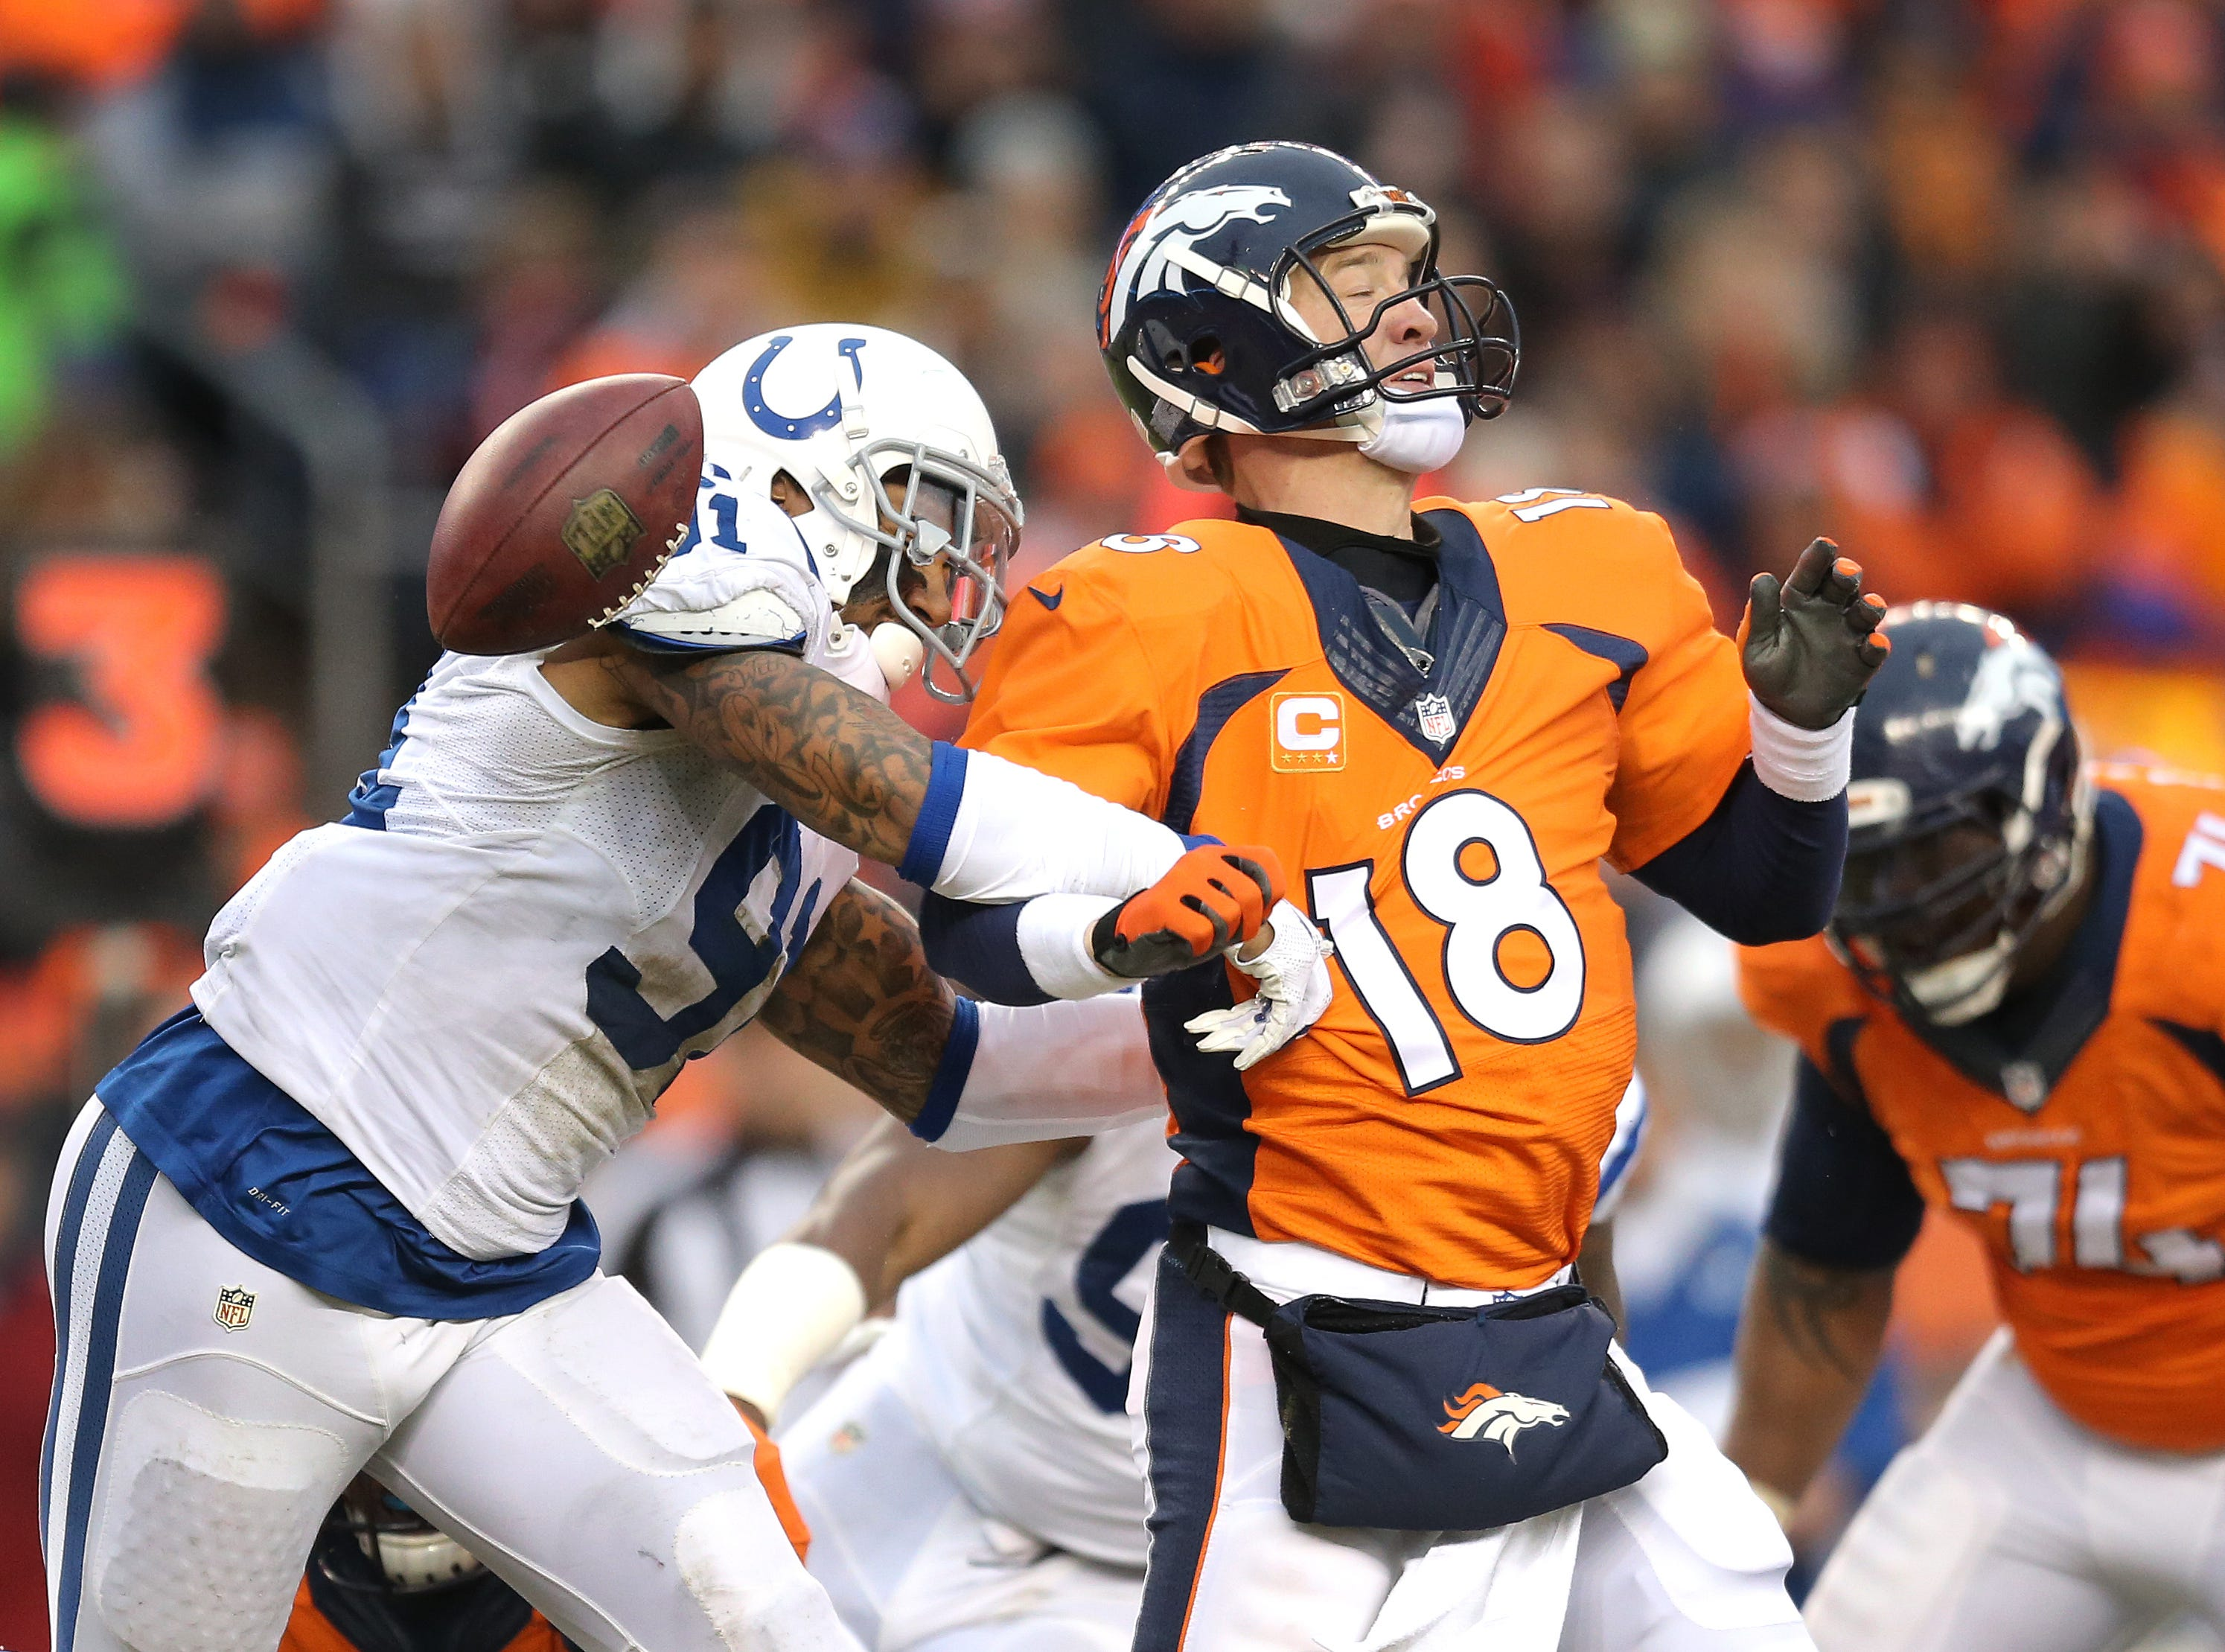 Indianapolis Colts linebacker Jonathan Newsome strips the ball from Denver Broncos quarterback Peyton Manning in the second quarter. Indianapolis faced Denver in their NFL playoff game Sunday, January 11, 2015.